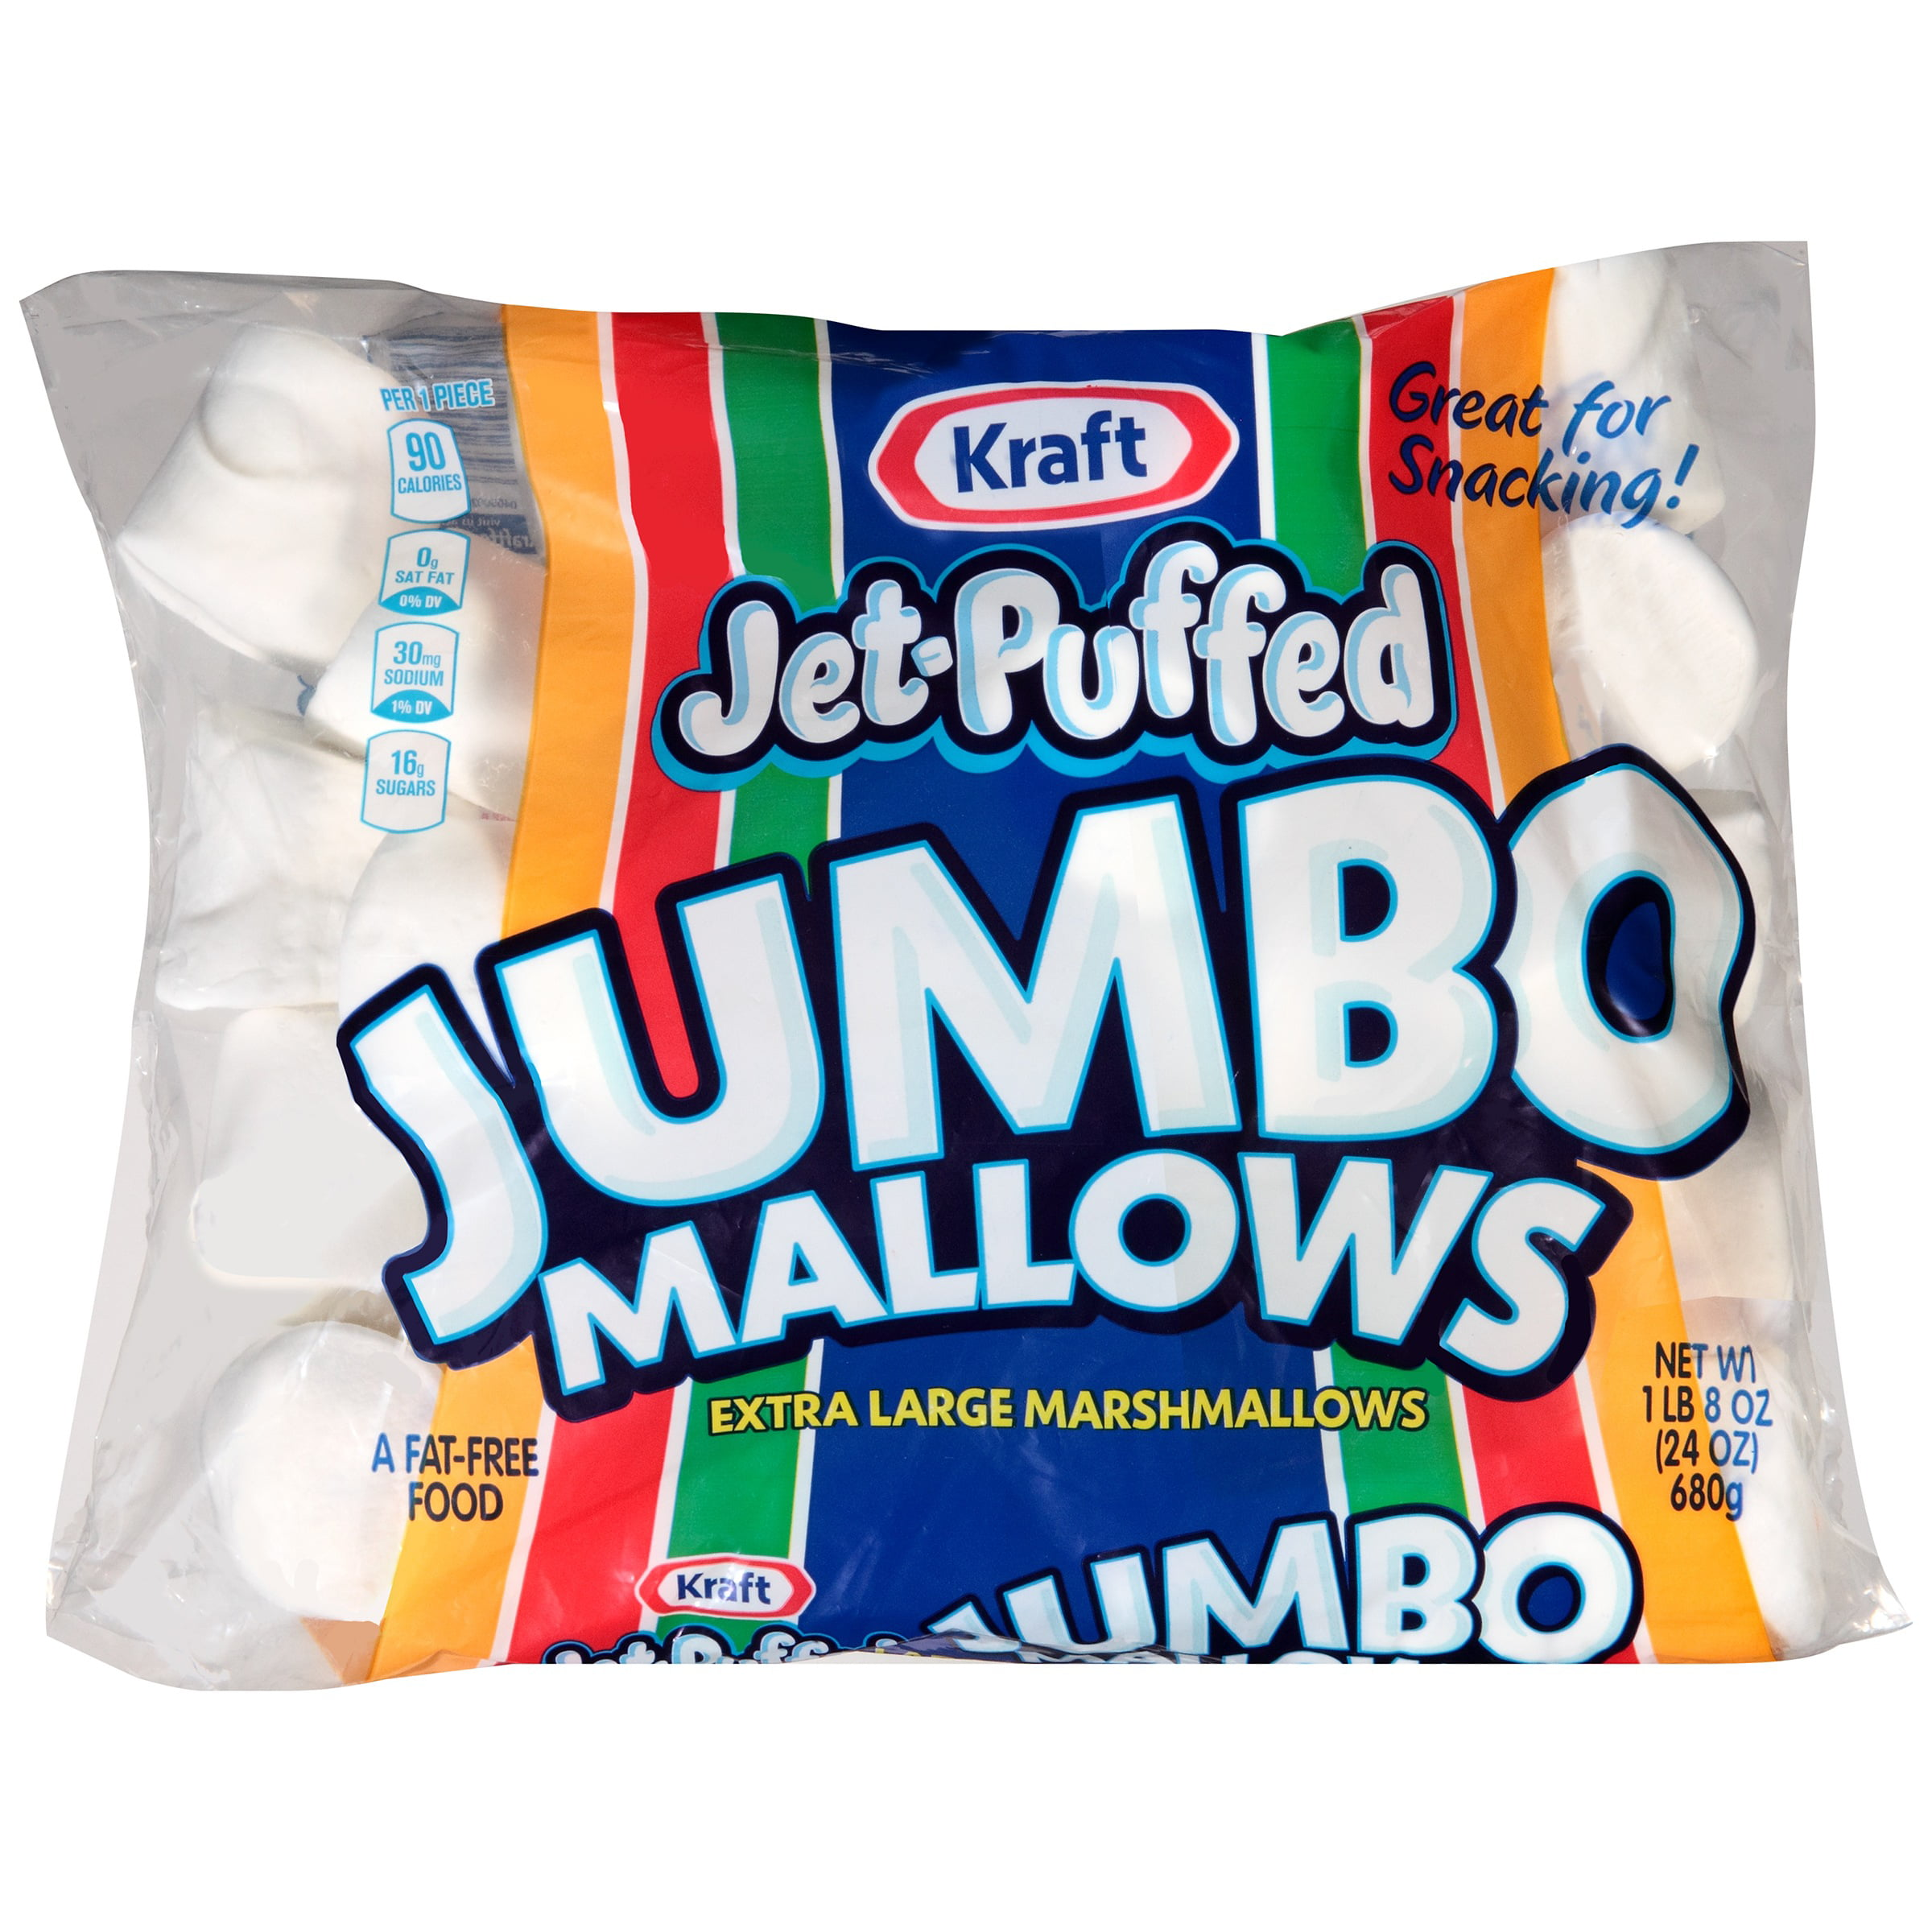 How many calories in marshmallow 44